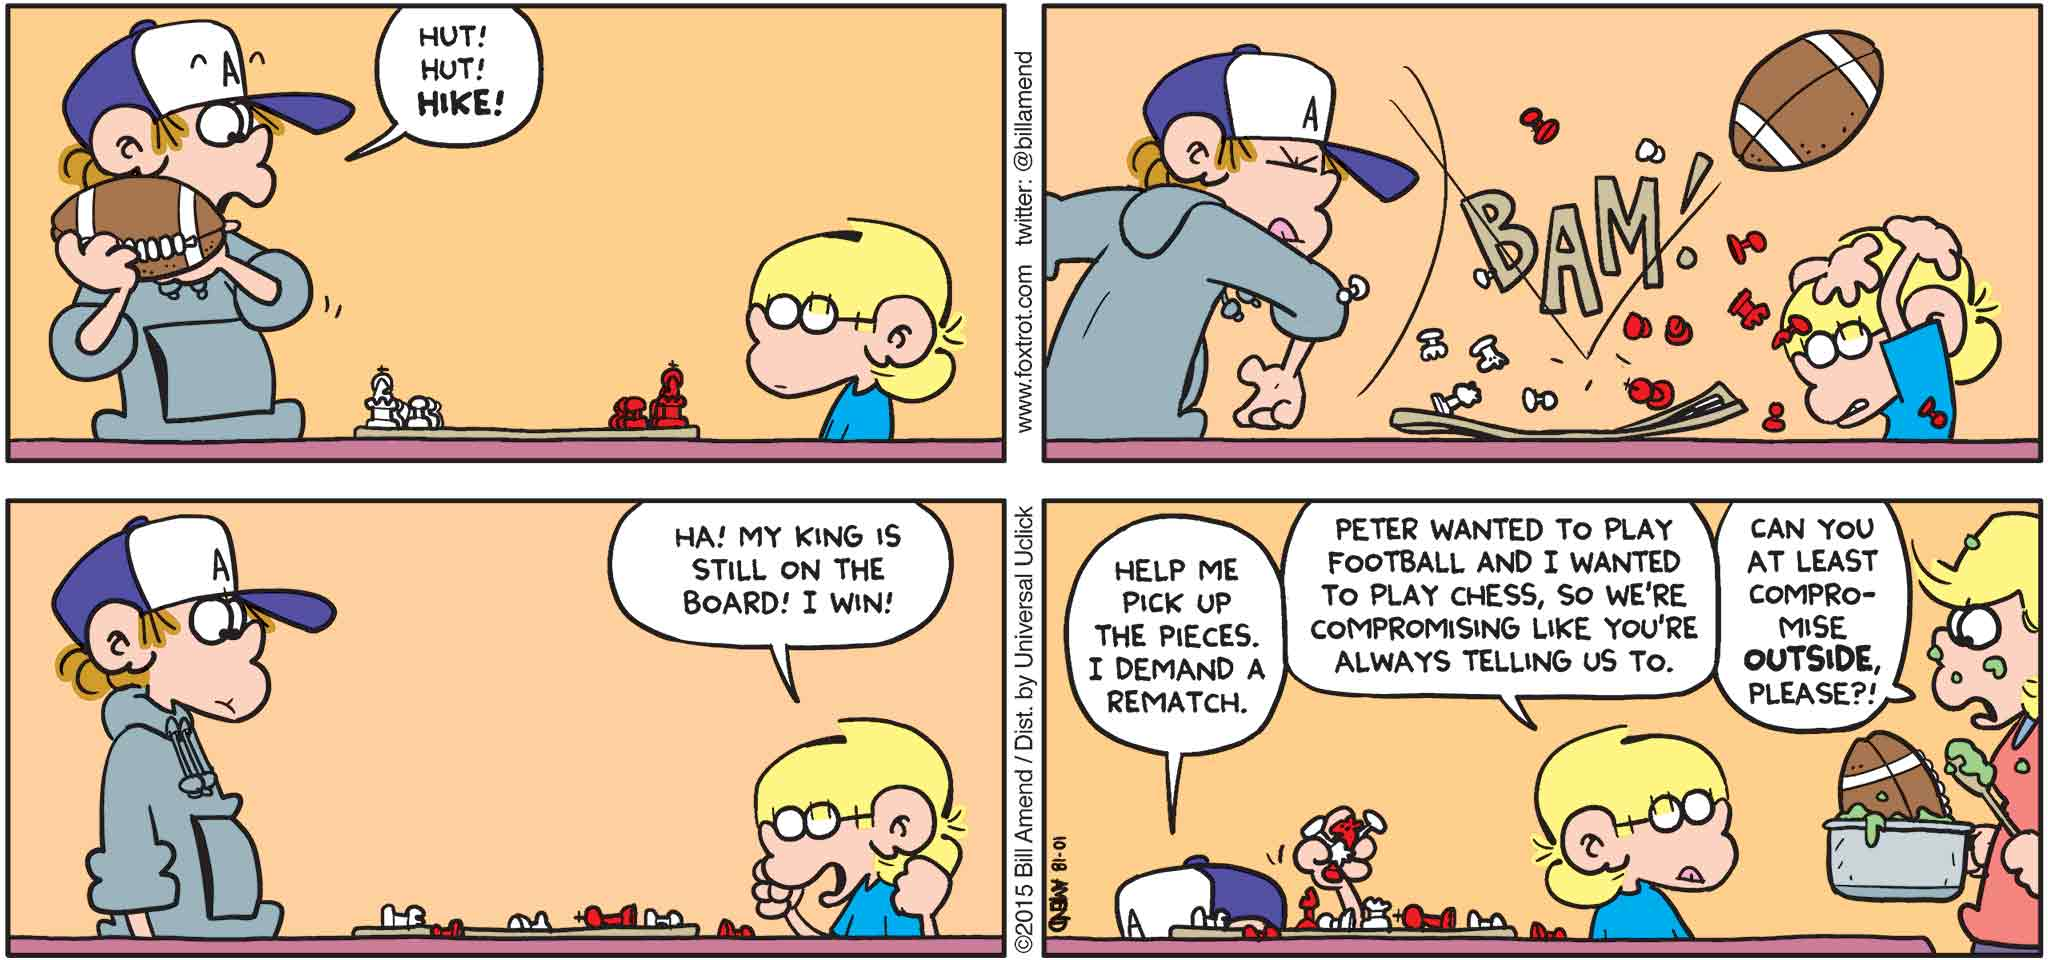 """FoxTrot by Bill Amend - """"Compromising Situation"""" published October 18, 2015 - Peter: Hut! Hut! Hike! Jason: Ha! My king is still on the board! I win! Peter: Help me pick up the pieces. I demand a rematch. Jason: Peter wanted to play football and I wanted to play chess, so we're compromising like you're always telling us to do. Andy: Can you at least compromise outside, please?!!"""